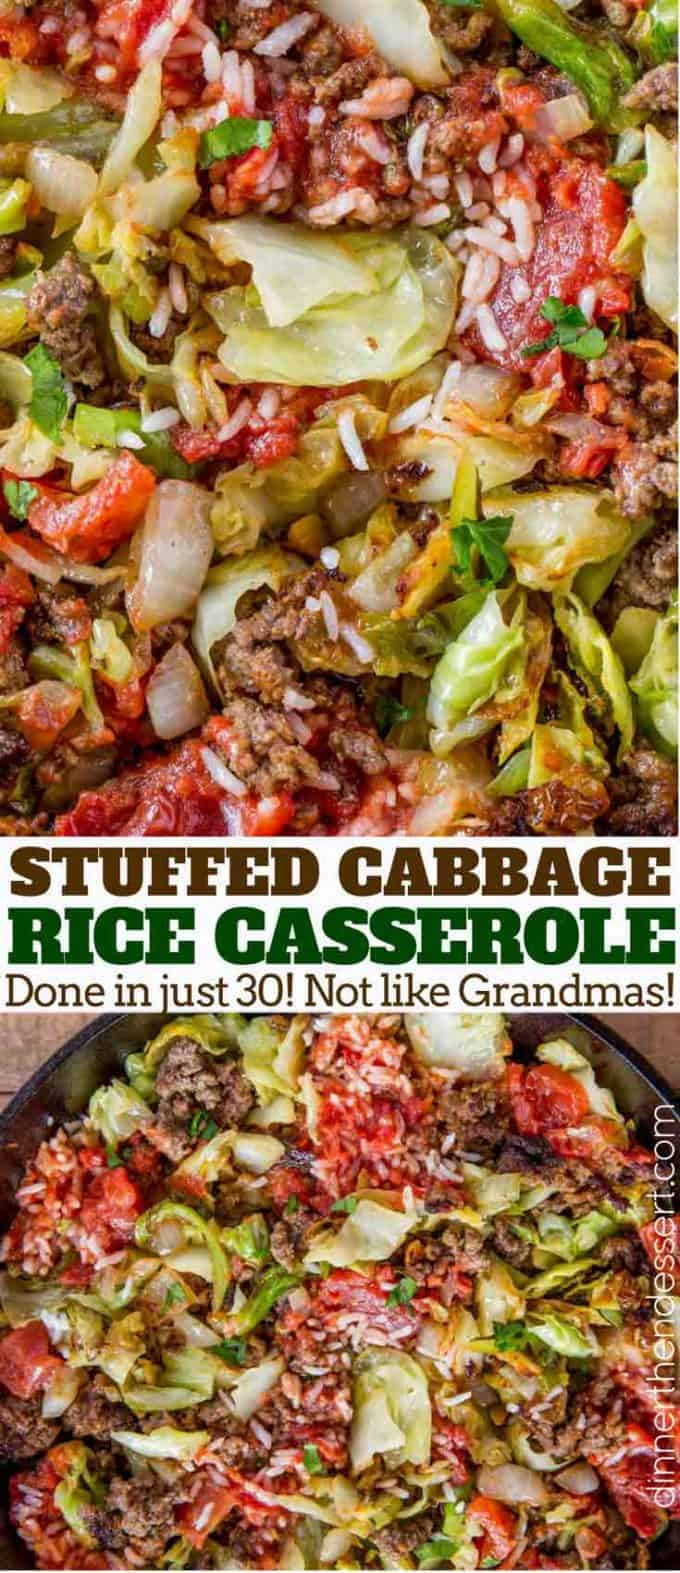 Stuffed cabbage rice casserole pin